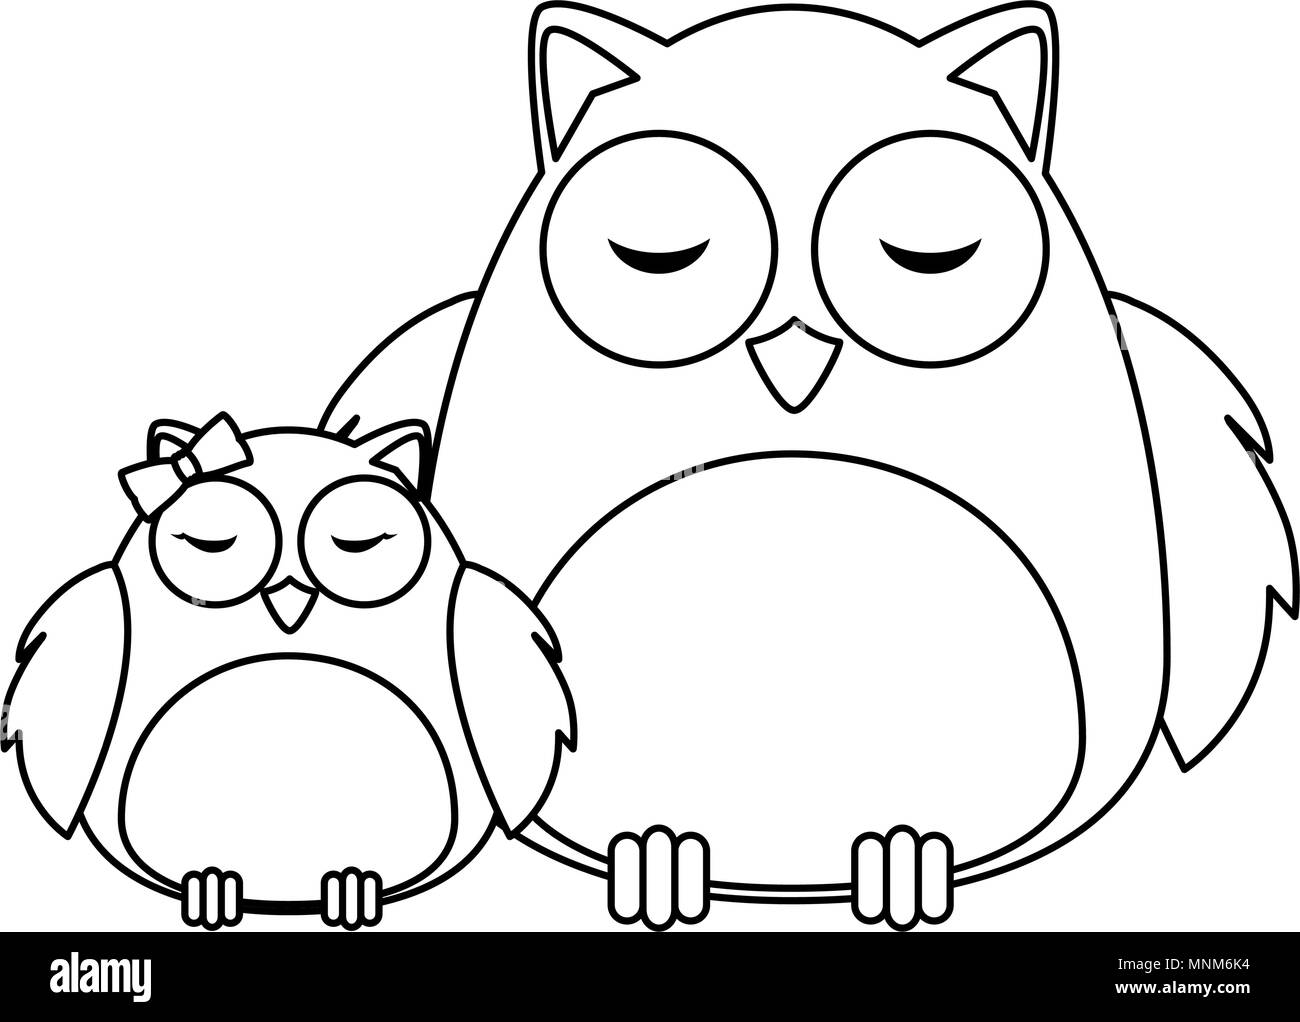 cute father and daughter owls birds characters - Stock Image